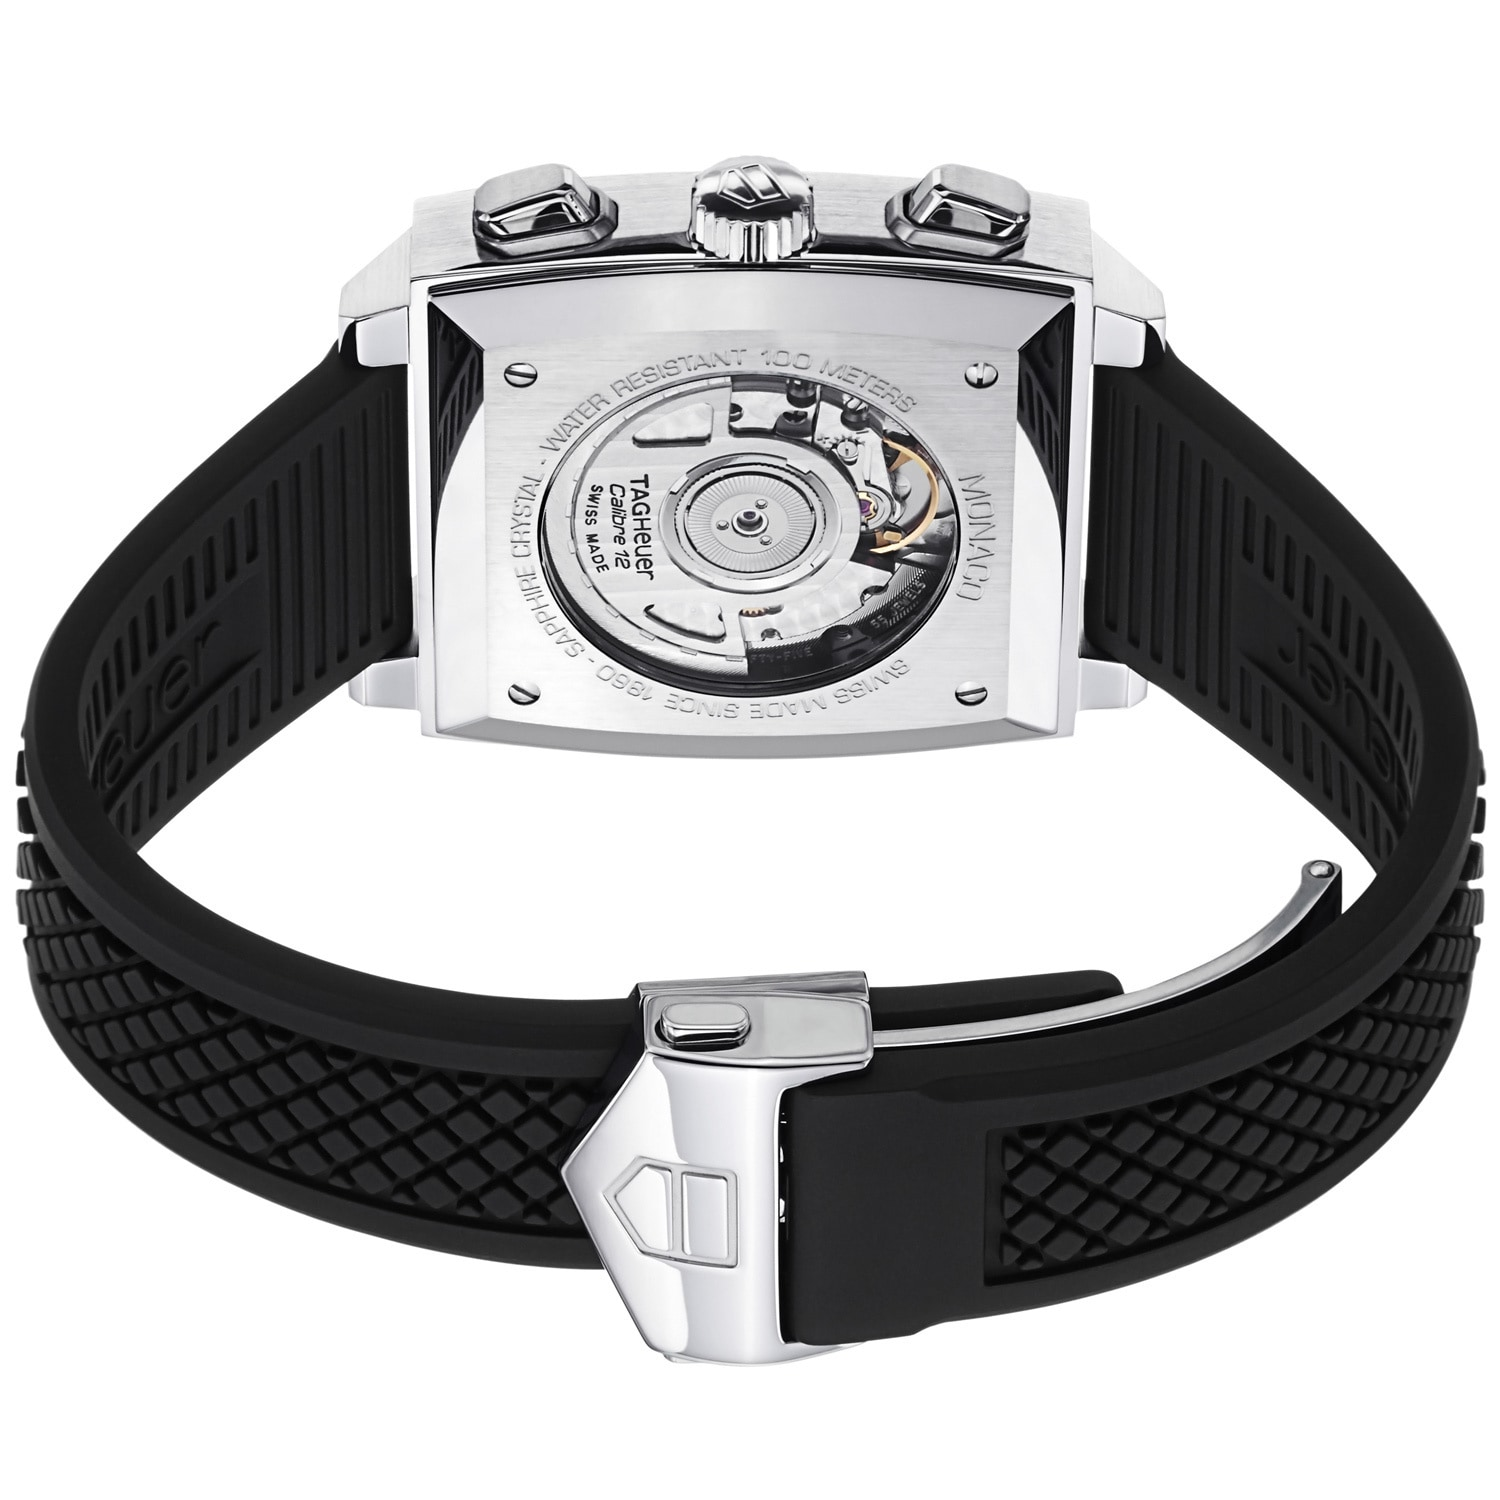 33a88d3e9aab1 Shop Tag Heuer Men s CAW2114.FT6021  Monaco  Black Dial Black Rubber Strap  Watch - Free Shipping Today - Overstock - 6393473